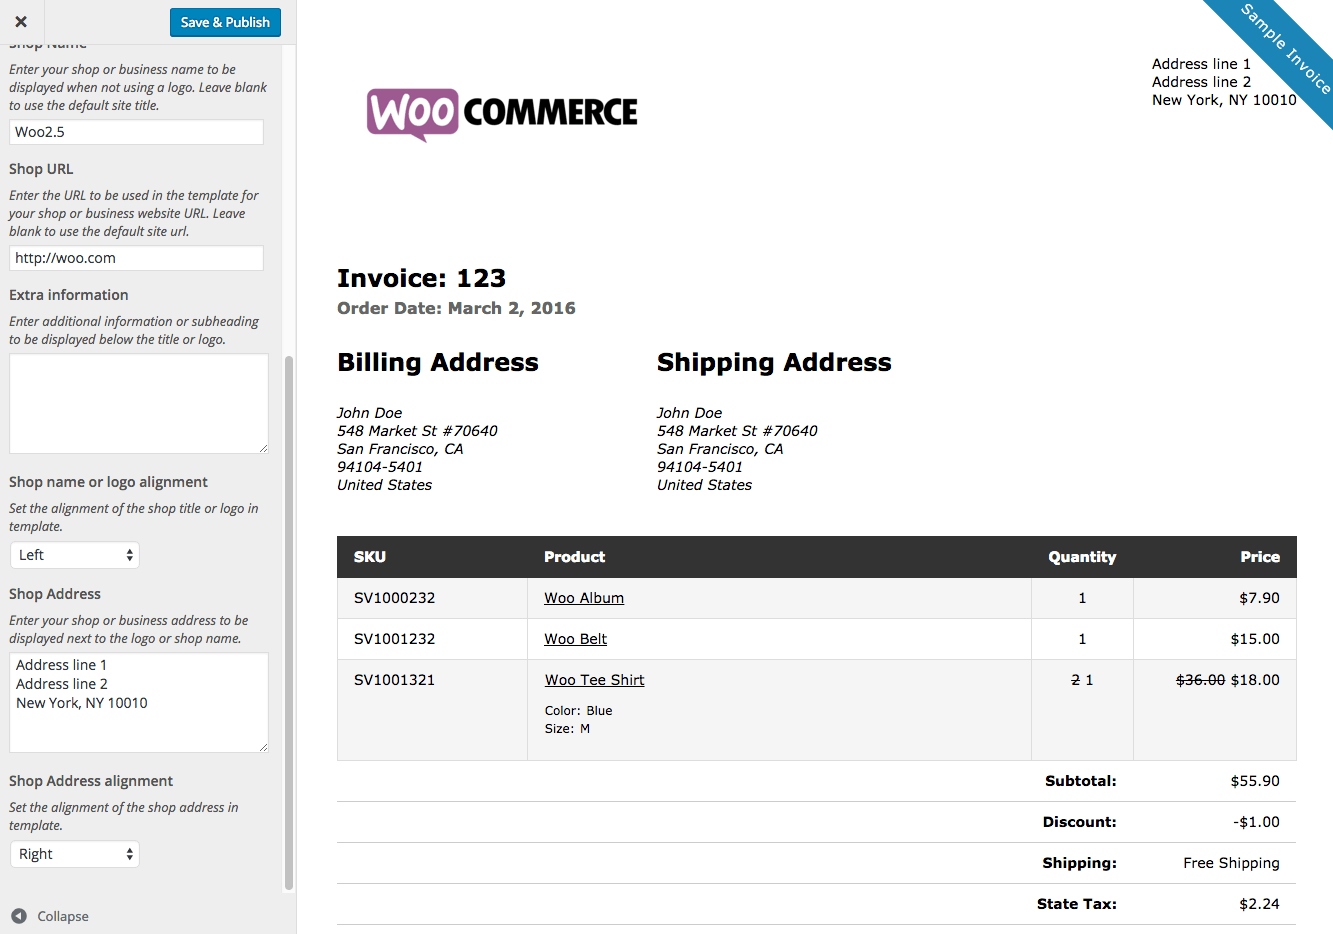 Angkajituus  Gorgeous Woocommerce Print Invoices Amp Packing Lists  Woocommerce Docs With Interesting Woocommerce Print Invoices  Packing Lists Customizer With Agreeable Best Android Receipt Scanner Also Fake Hotel Receipt Generator In Addition Pos Receipt Printers And Post Office Ltd Your Receipt As Well As Iphone Receipts Additionally Examples Of Cash Receipts From Docswoocommercecom With Angkajituus  Interesting Woocommerce Print Invoices Amp Packing Lists  Woocommerce Docs With Agreeable Woocommerce Print Invoices  Packing Lists Customizer And Gorgeous Best Android Receipt Scanner Also Fake Hotel Receipt Generator In Addition Pos Receipt Printers From Docswoocommercecom